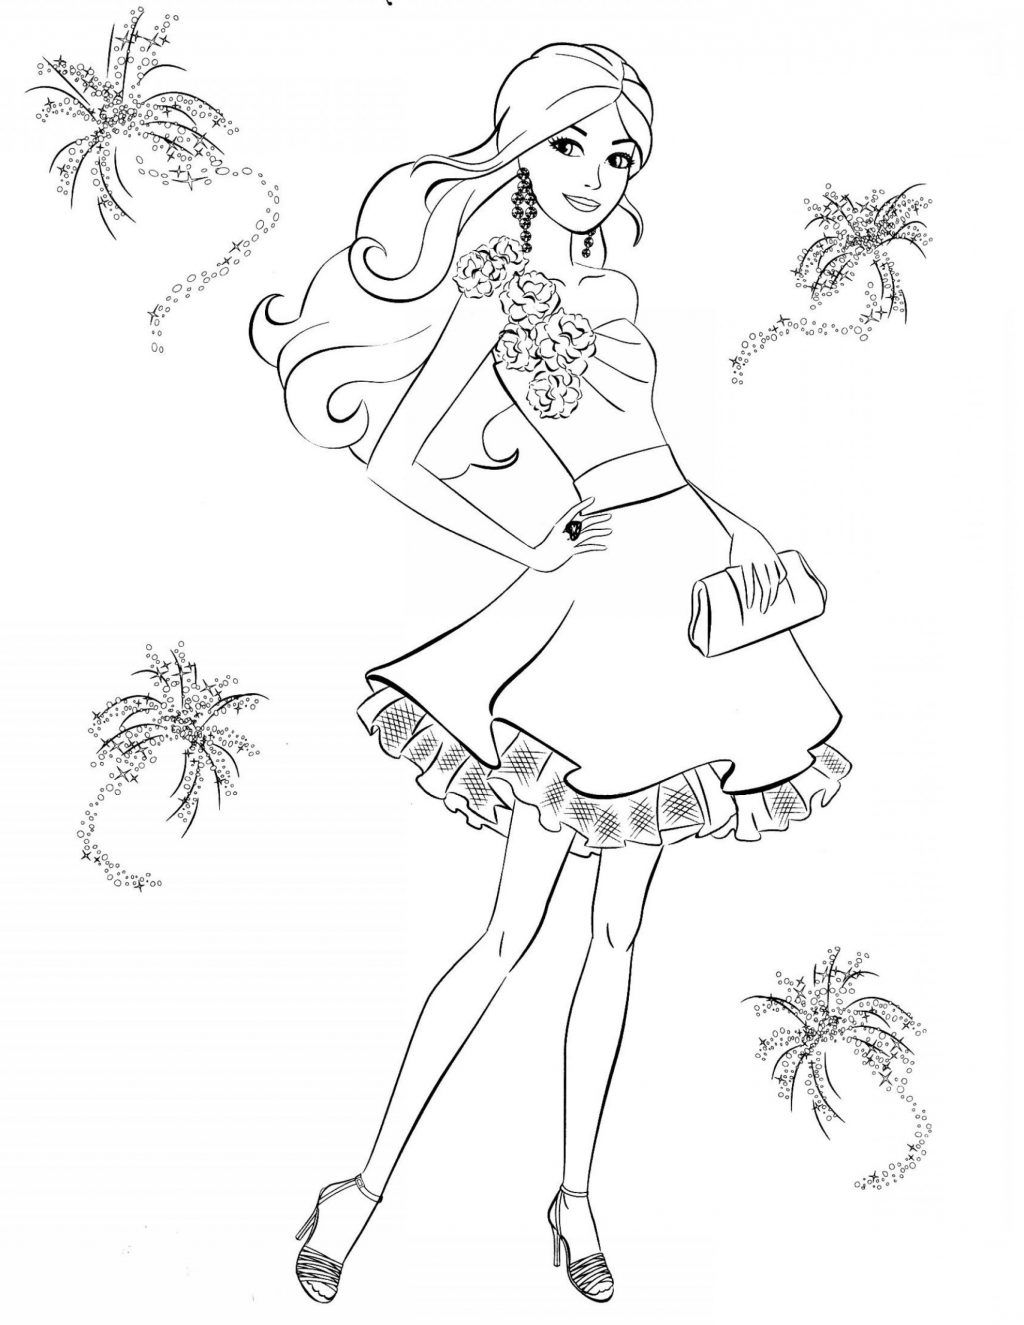 Barbie Coloring Sheets Printable In 2020 Barbie Coloring Pages Coloring Pages For Girls Cute Coloring Pages